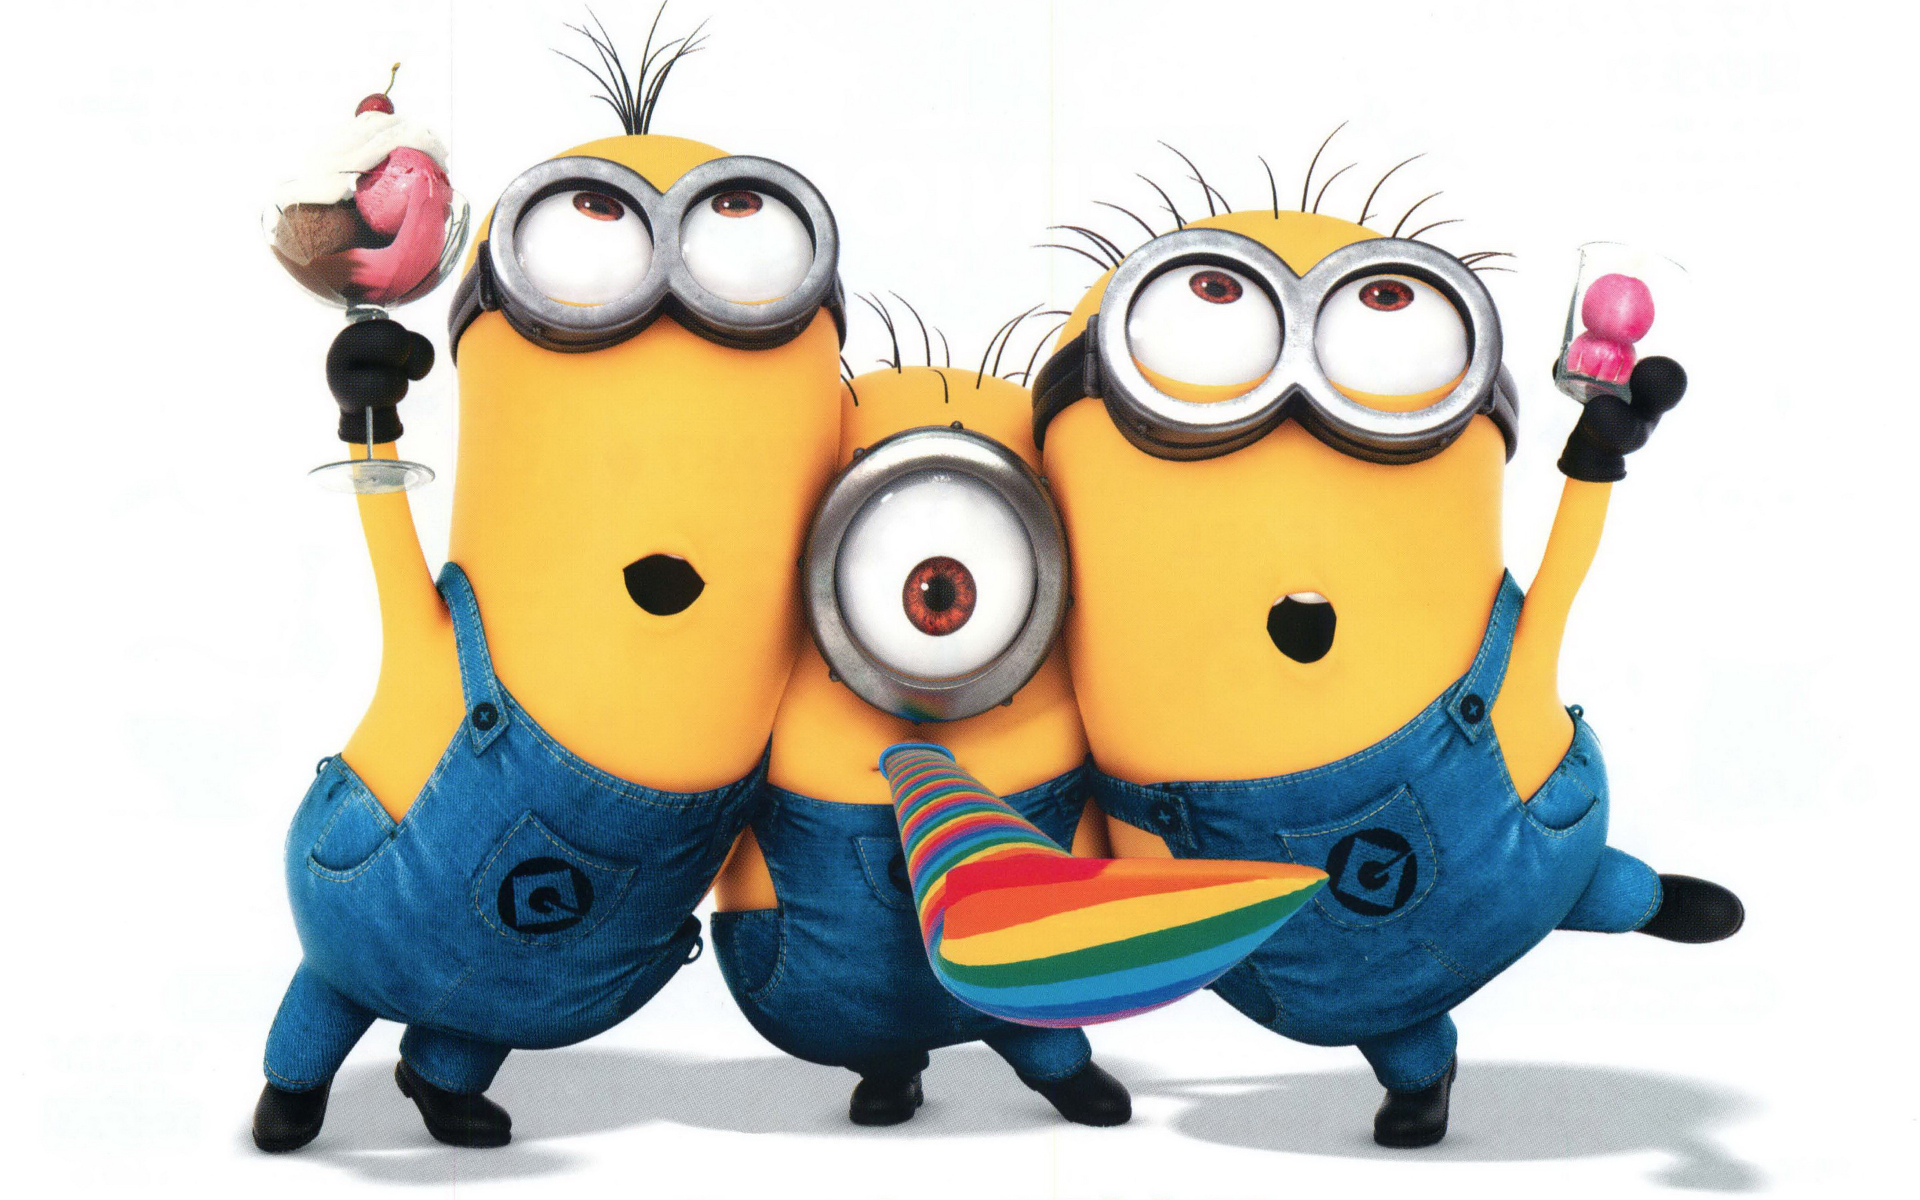 Awesome Minions free wallpaper ID:70264 for hd 1920x1200 PC